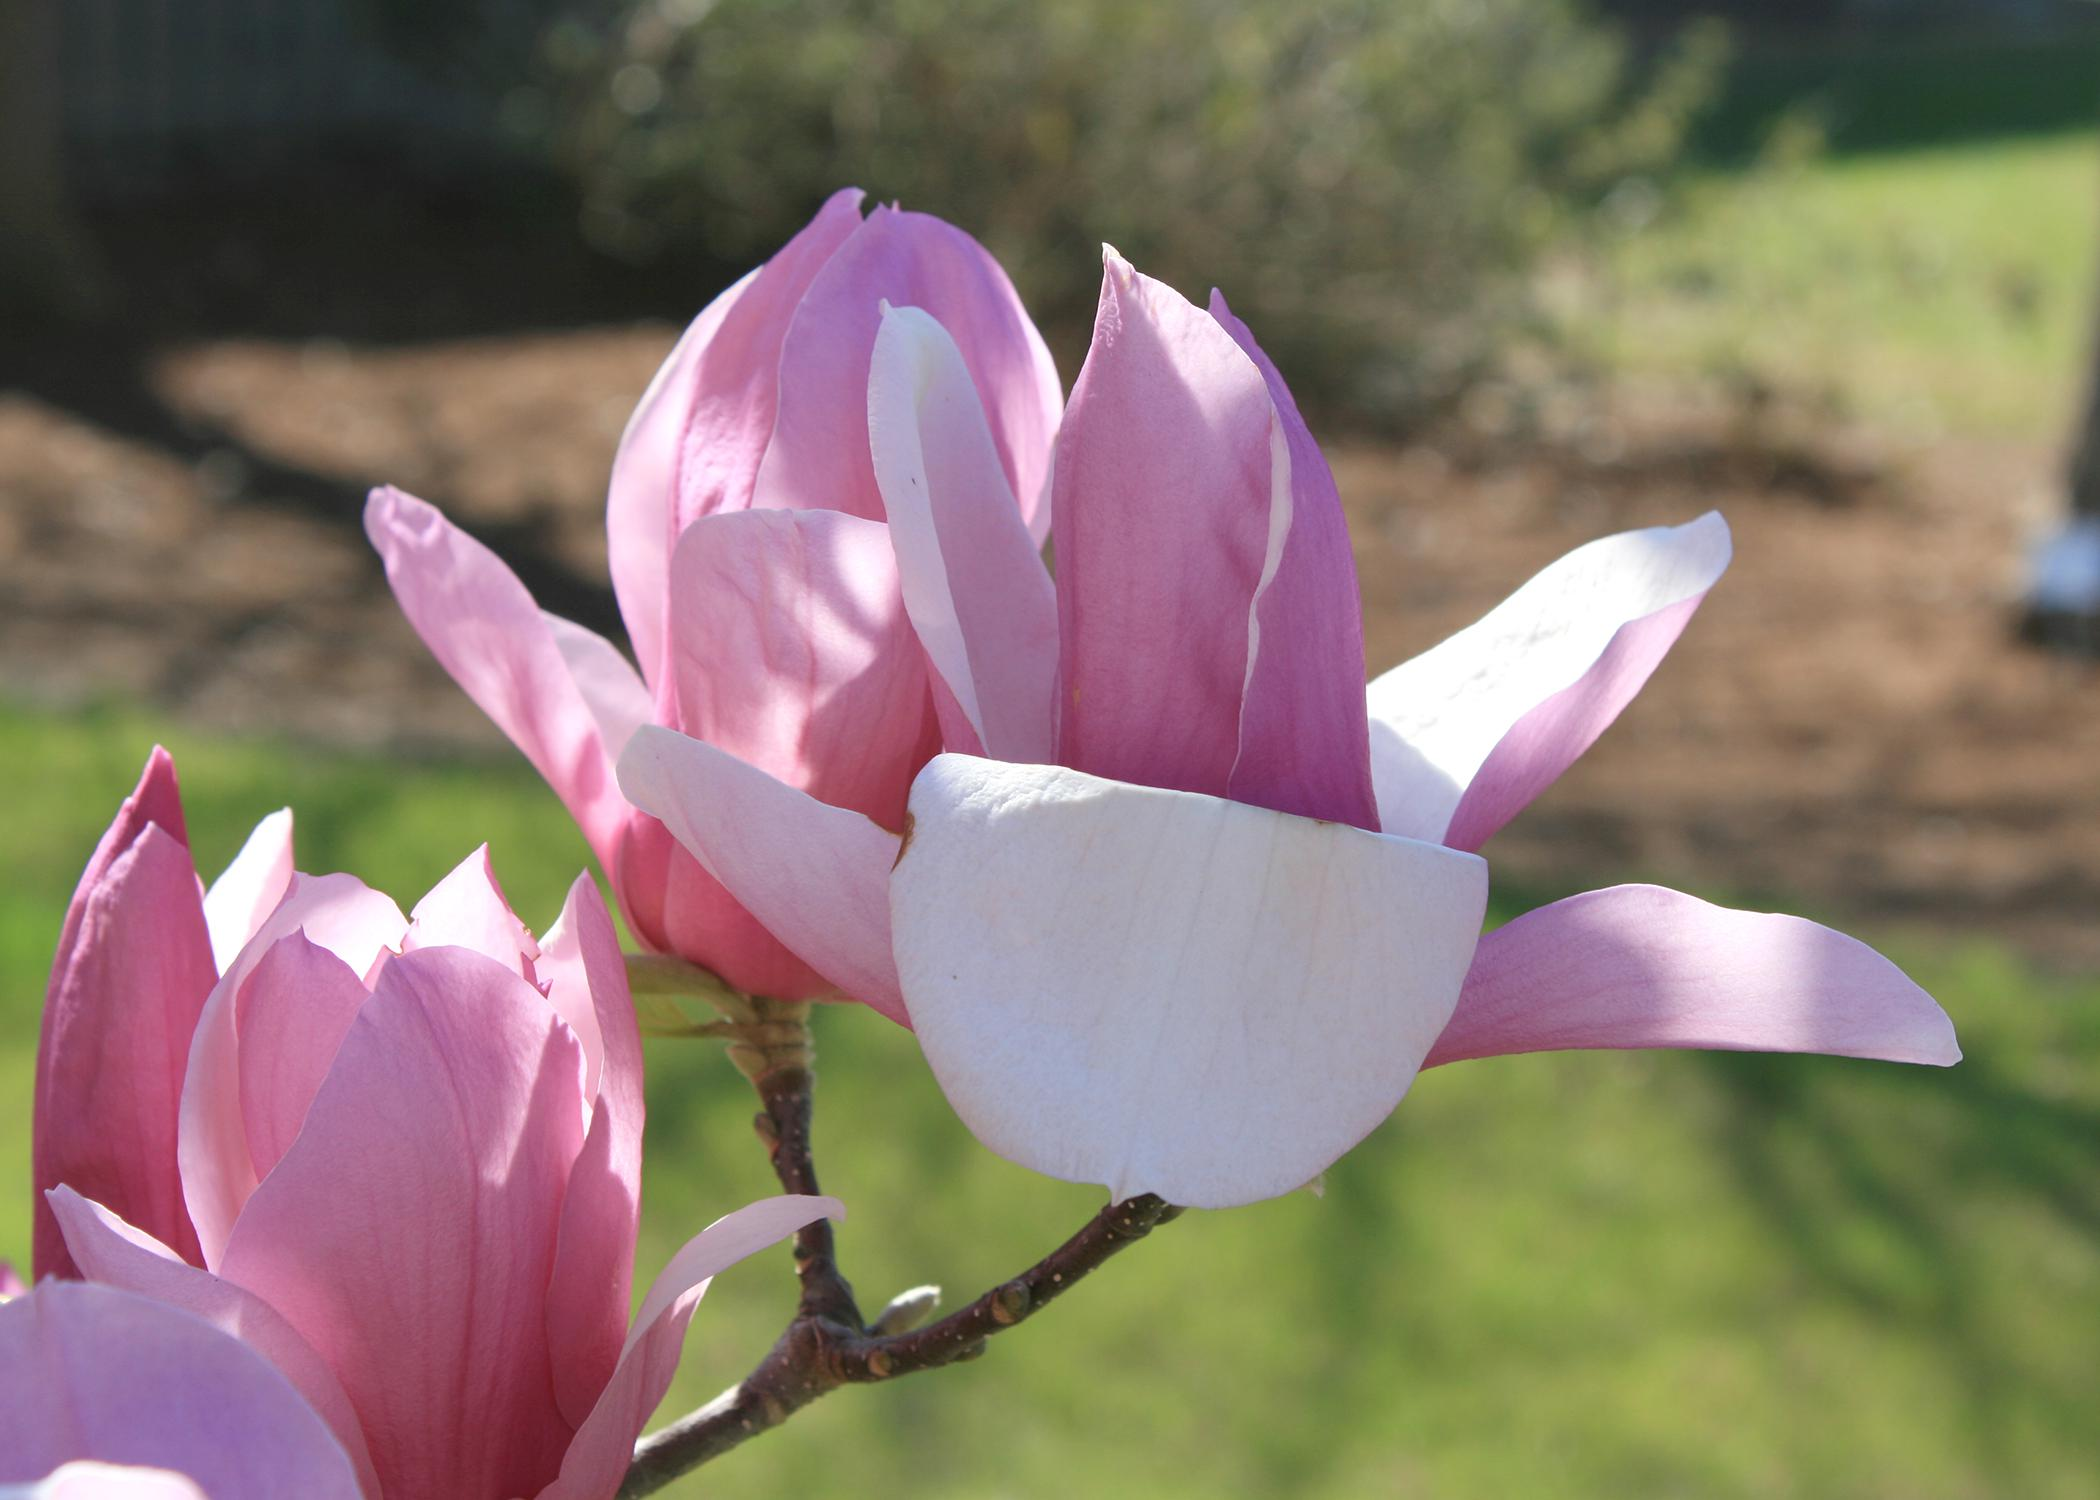 Some saucer magnolias can have blooms up to 10 inches across with colors ranging from white and pink to a bold purple. (Photo by MSU Extension/Gary Bachman)